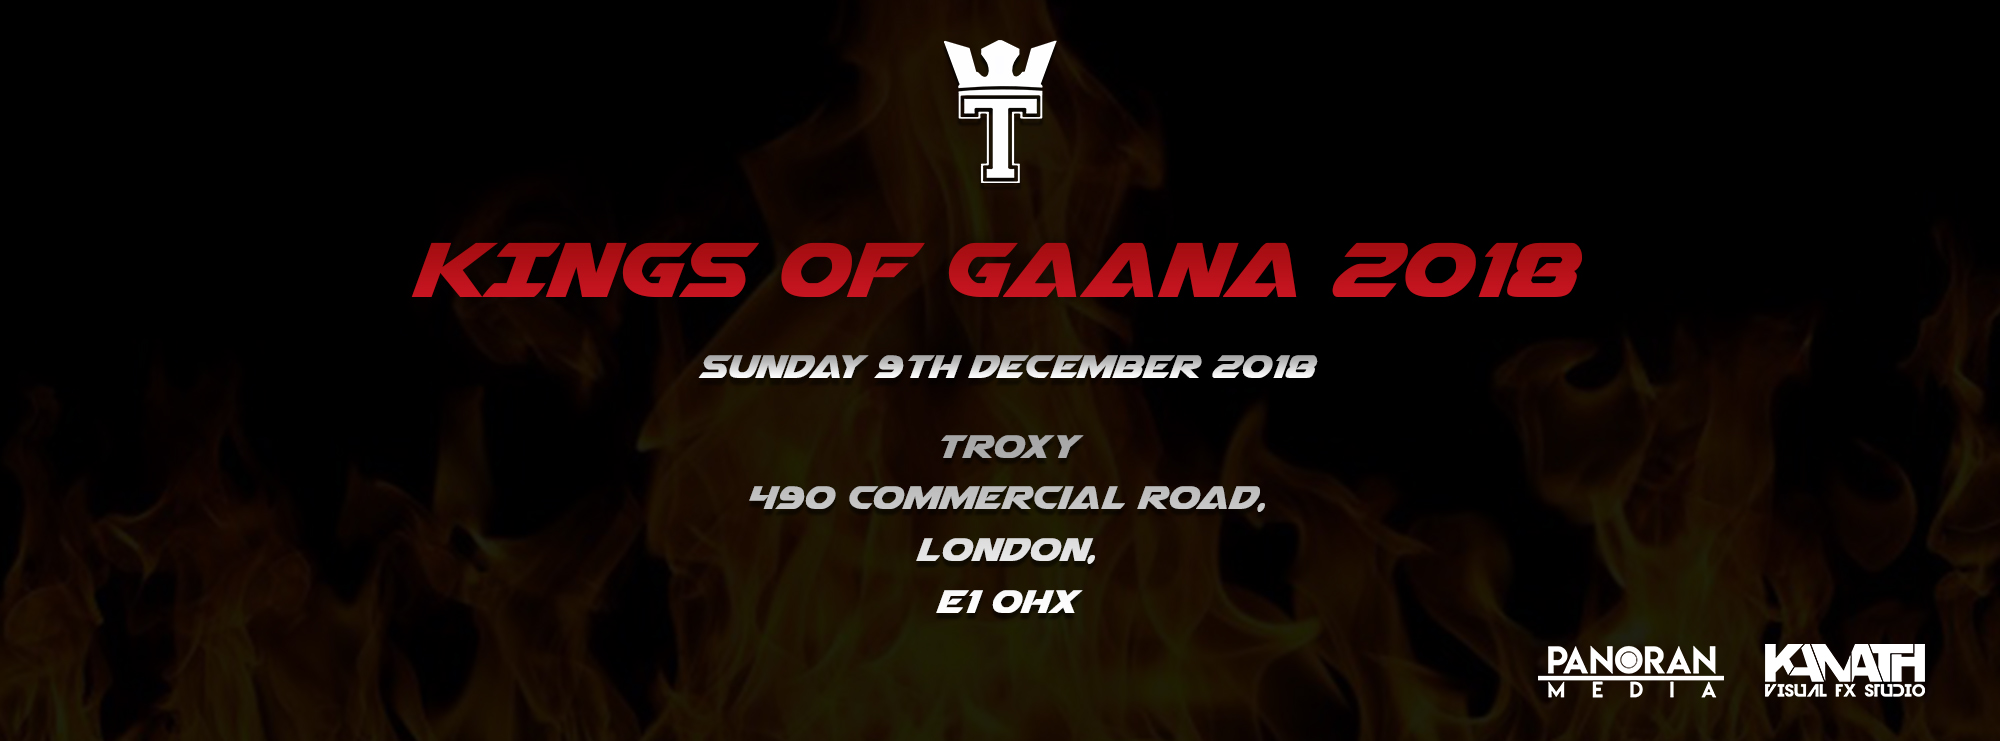 Body Big Banner - Kings of Gaana